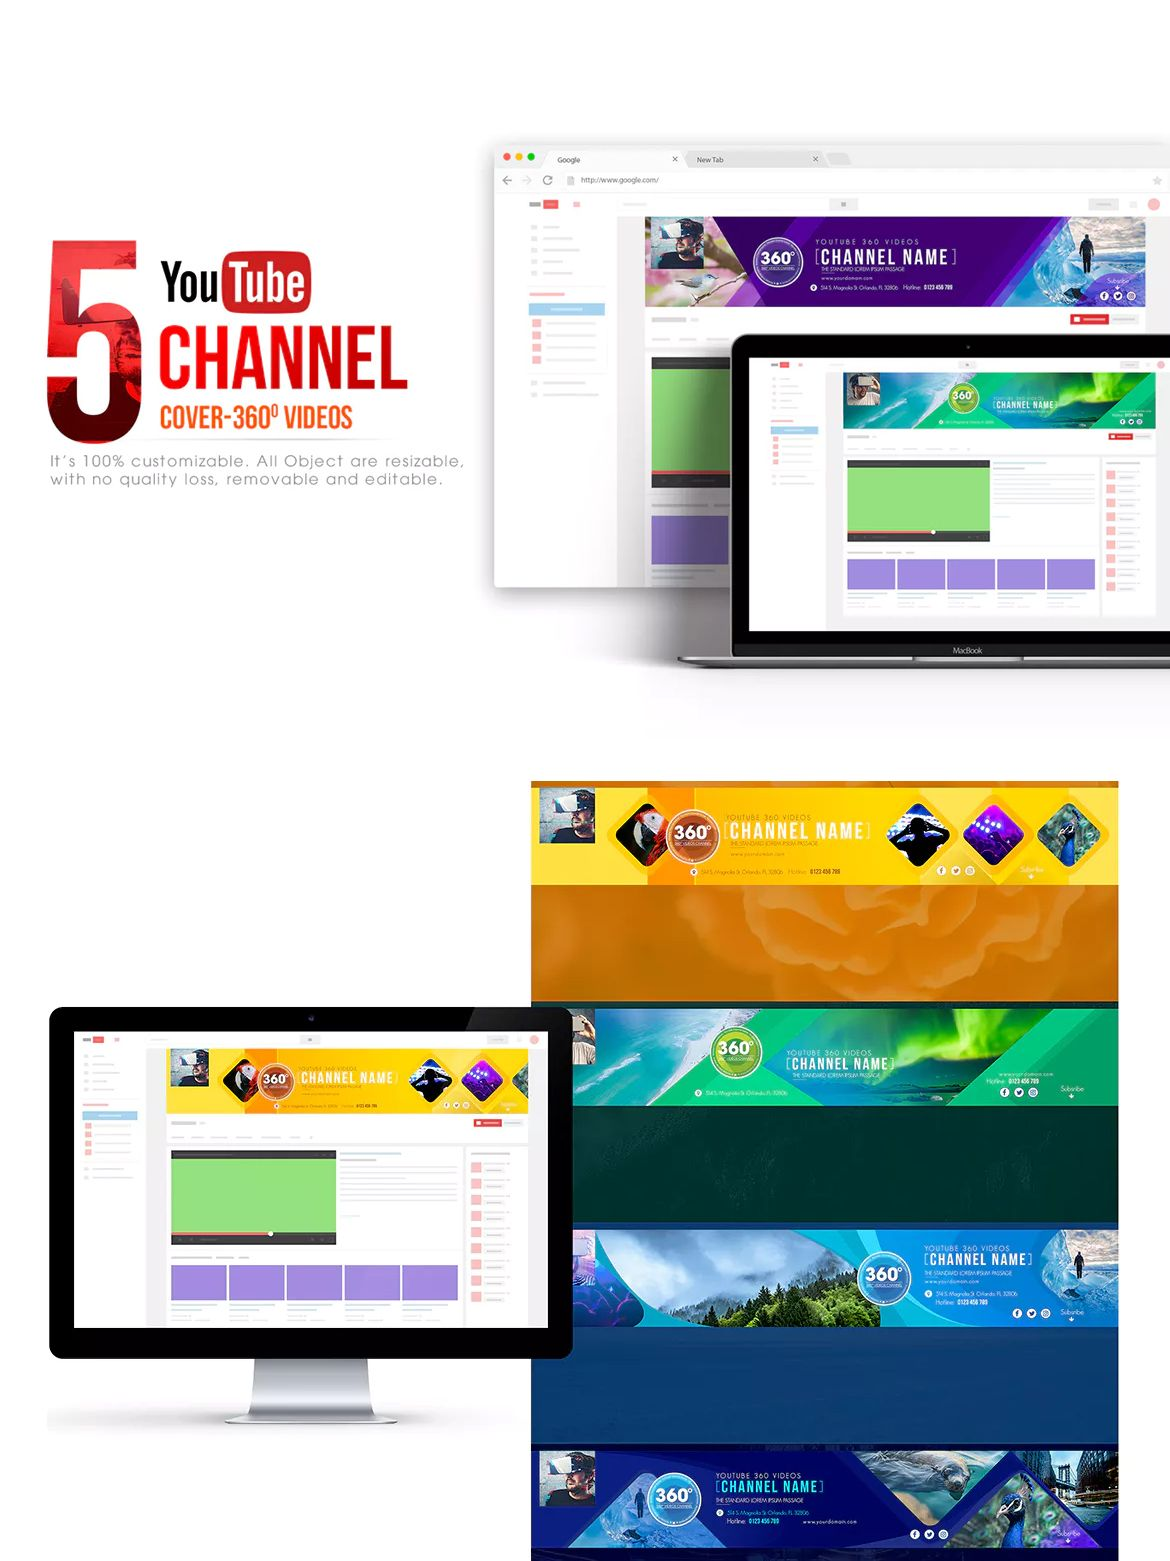 360 Video Channel - Youtube Banner Template PSD | Youtube Banner ...